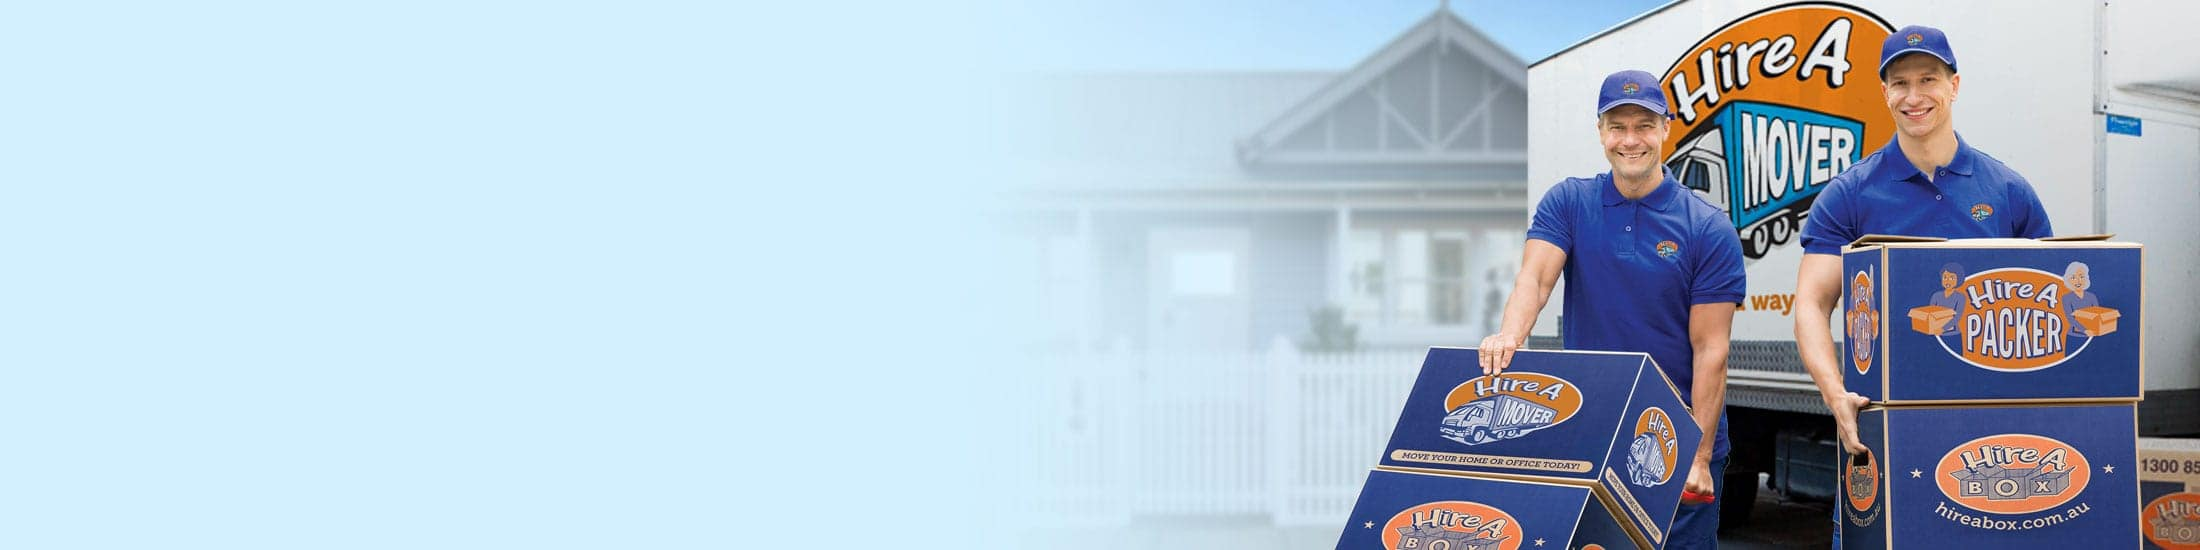 Hire A Mover Removalists